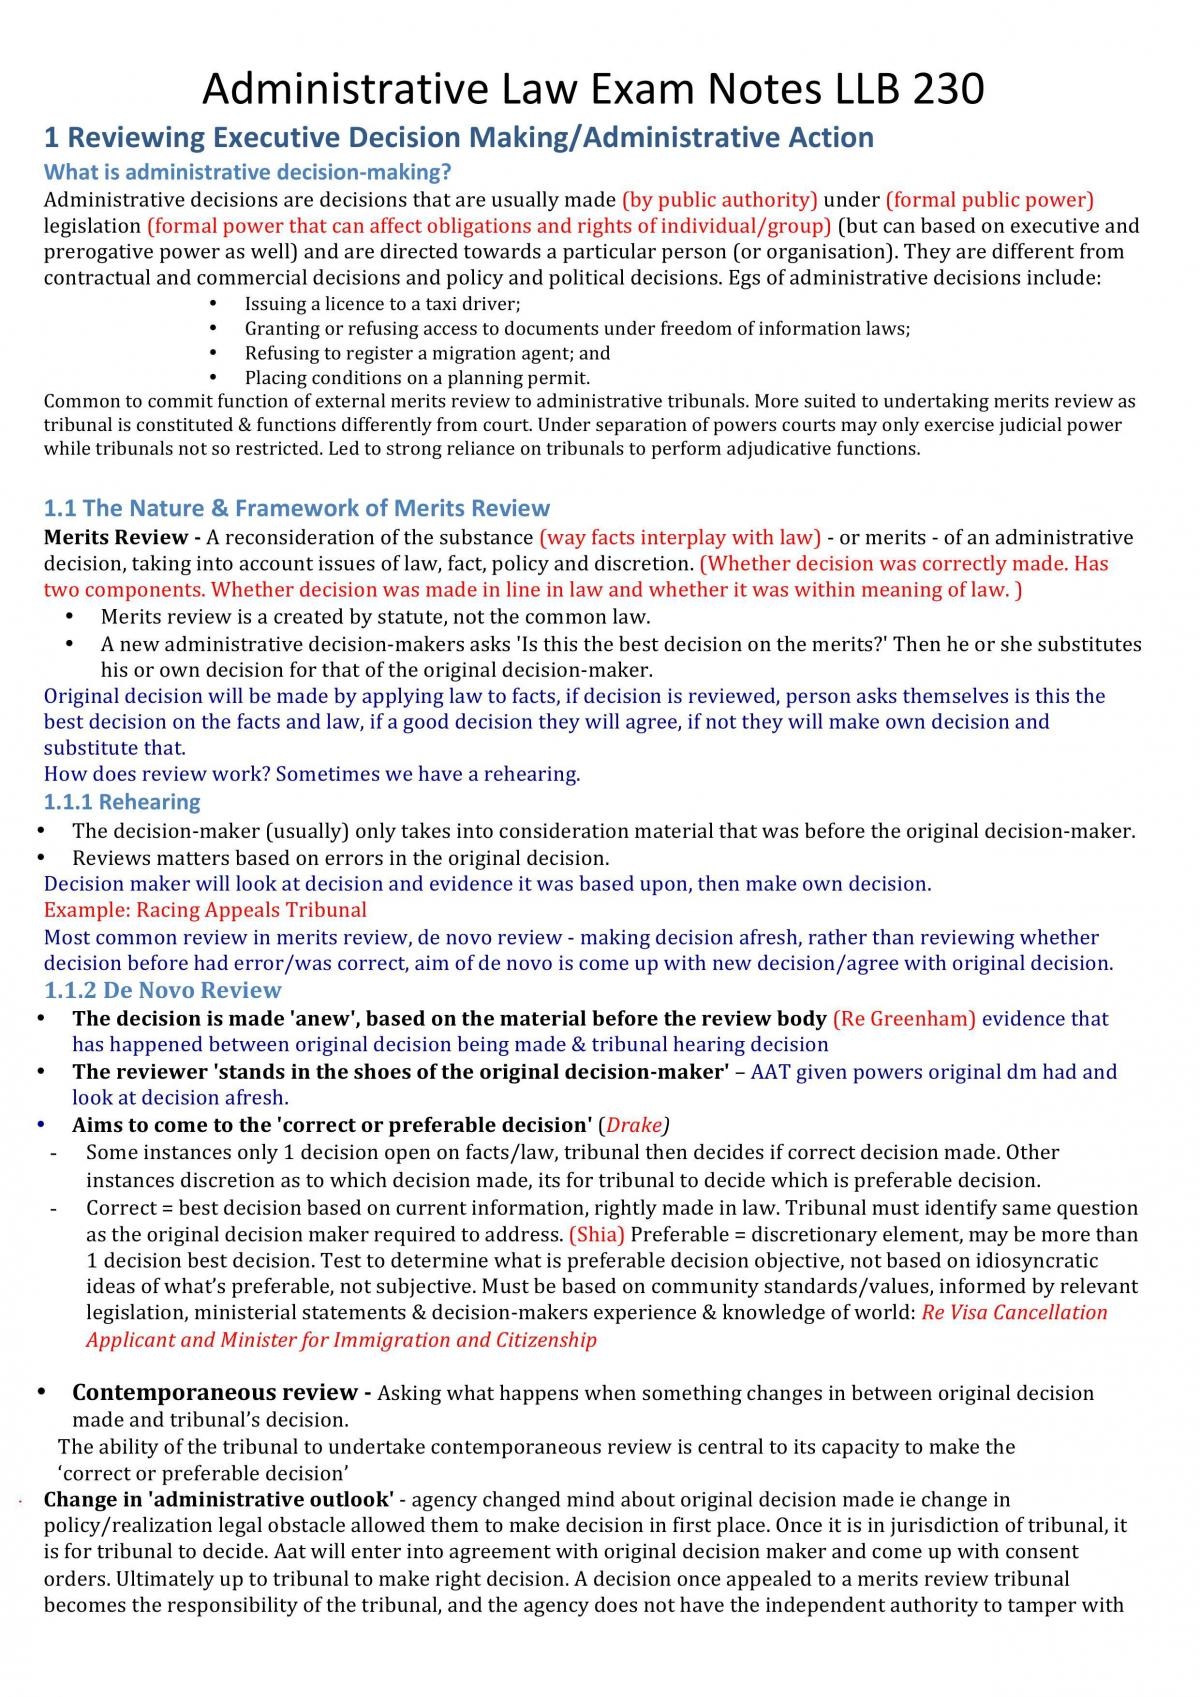 Administrative Law Exam Notes - Page 1